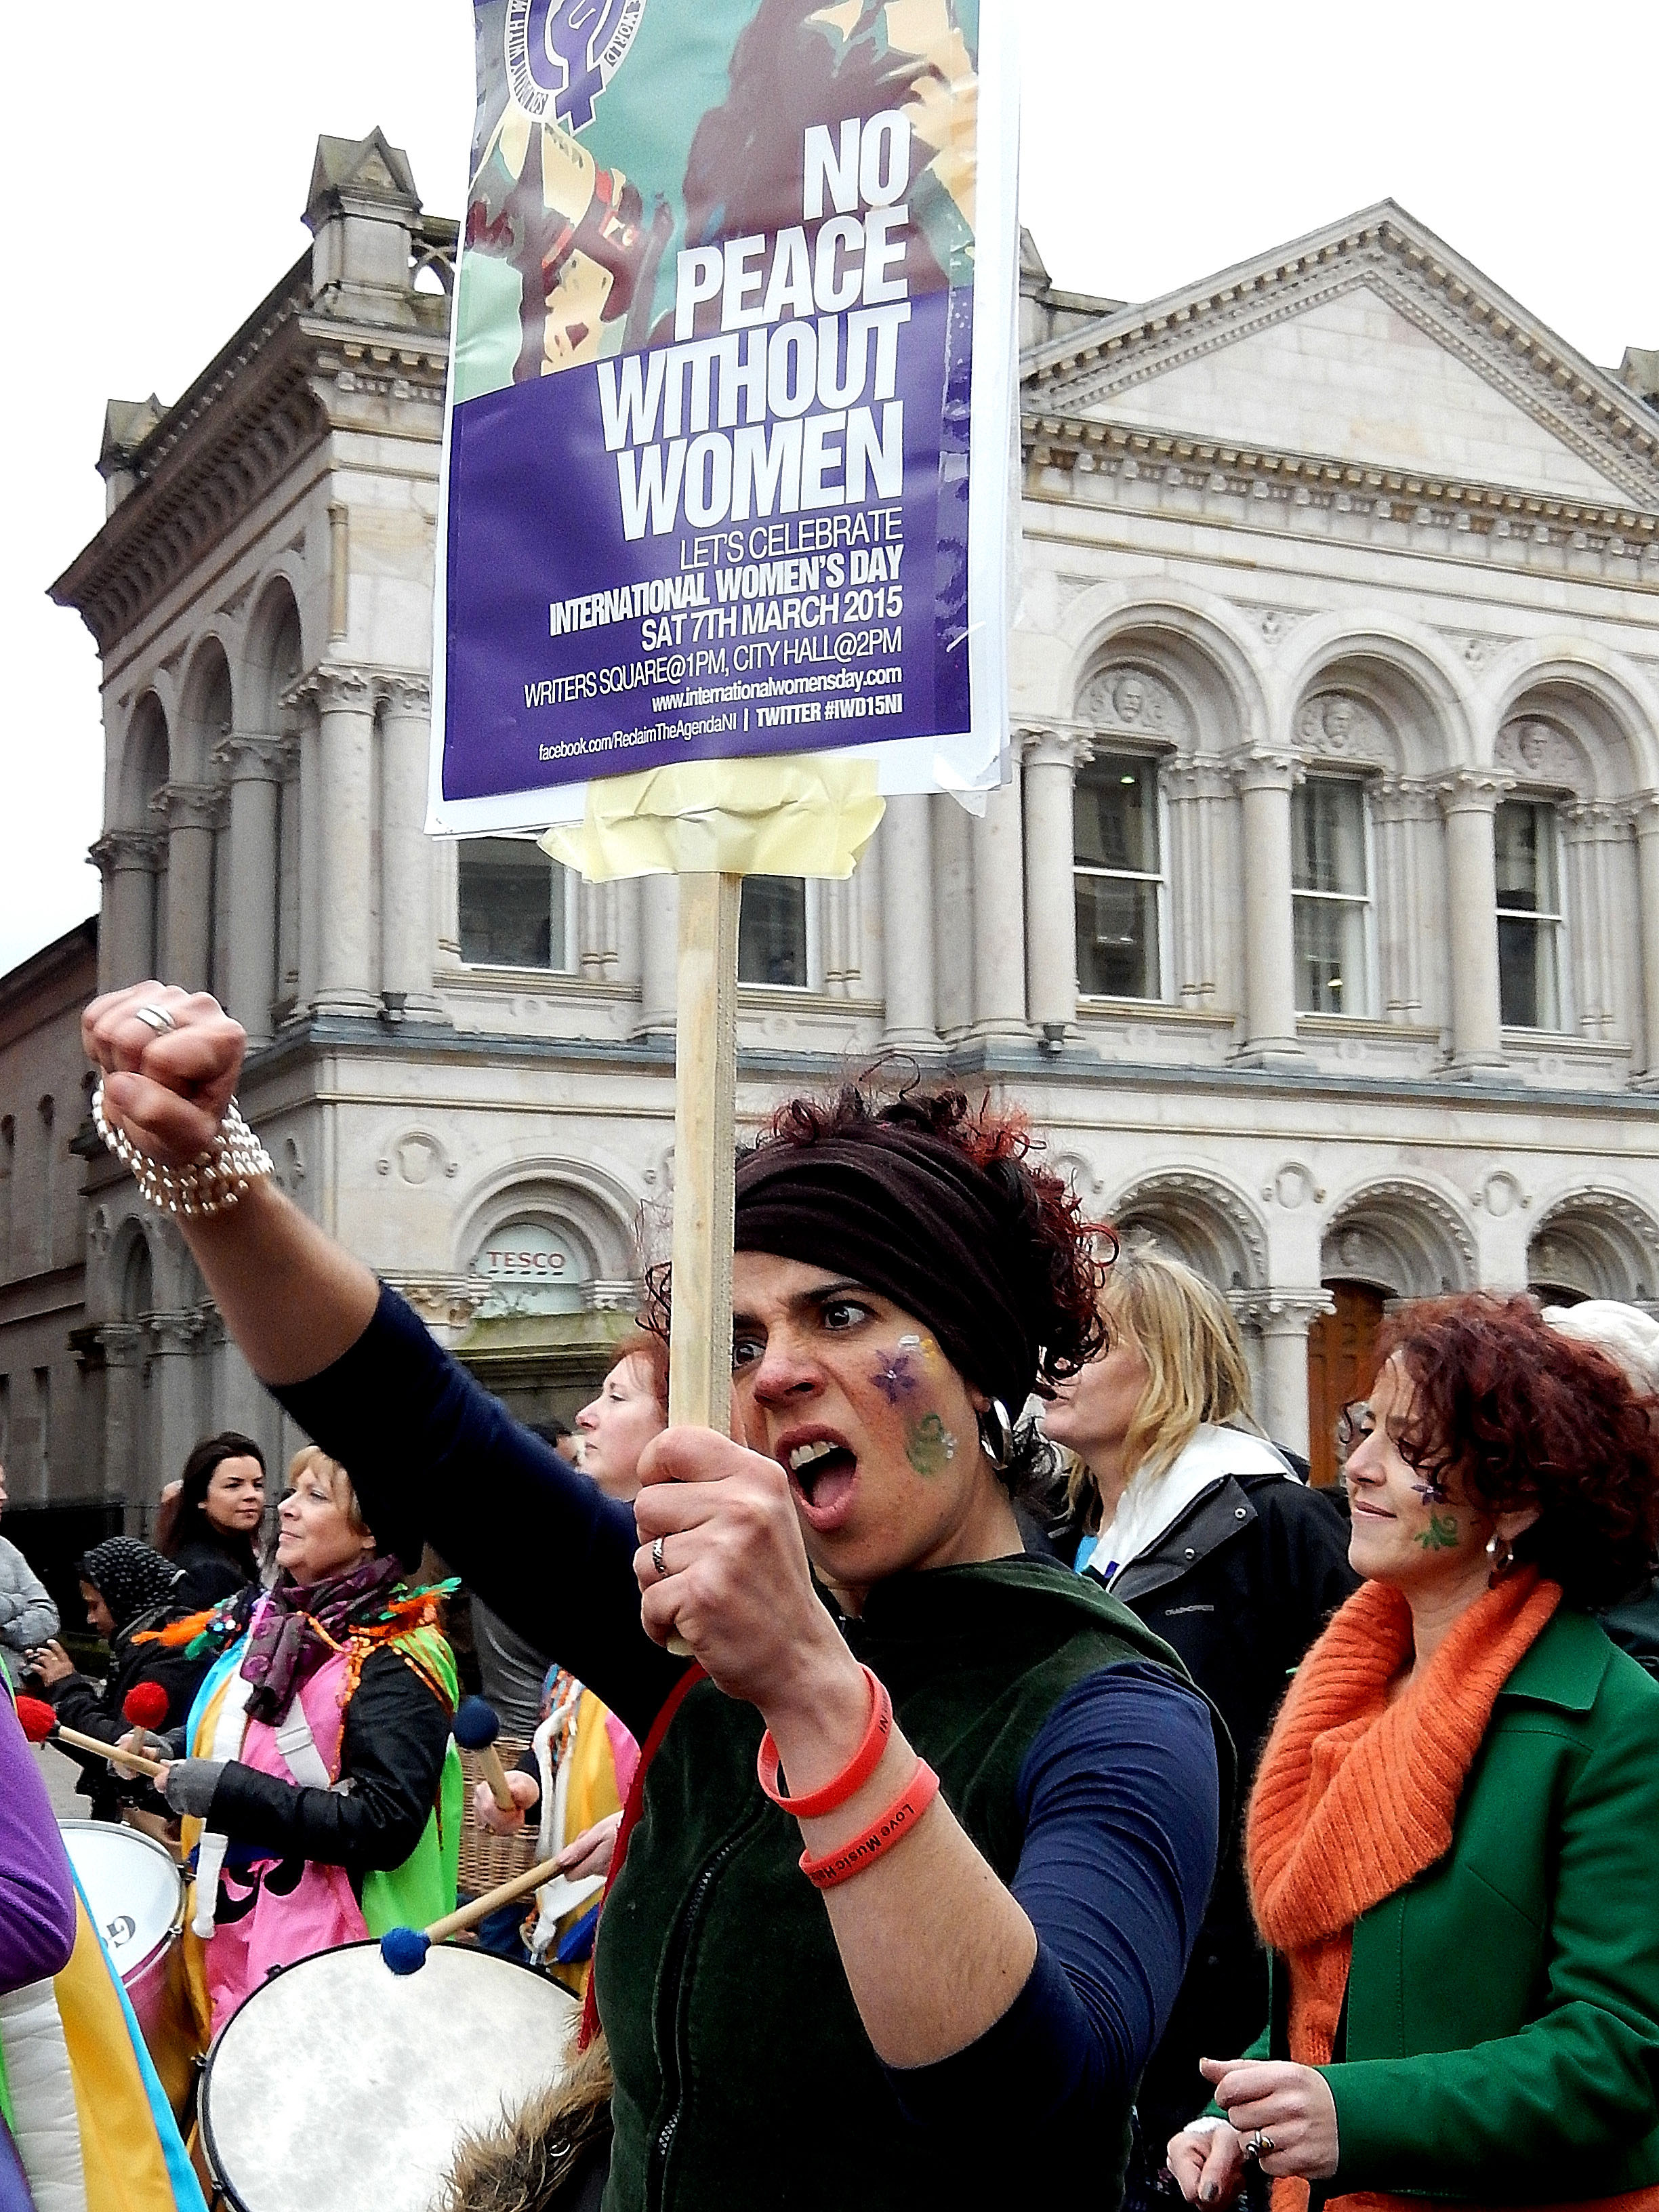 Belfast celebrates International Women's Day